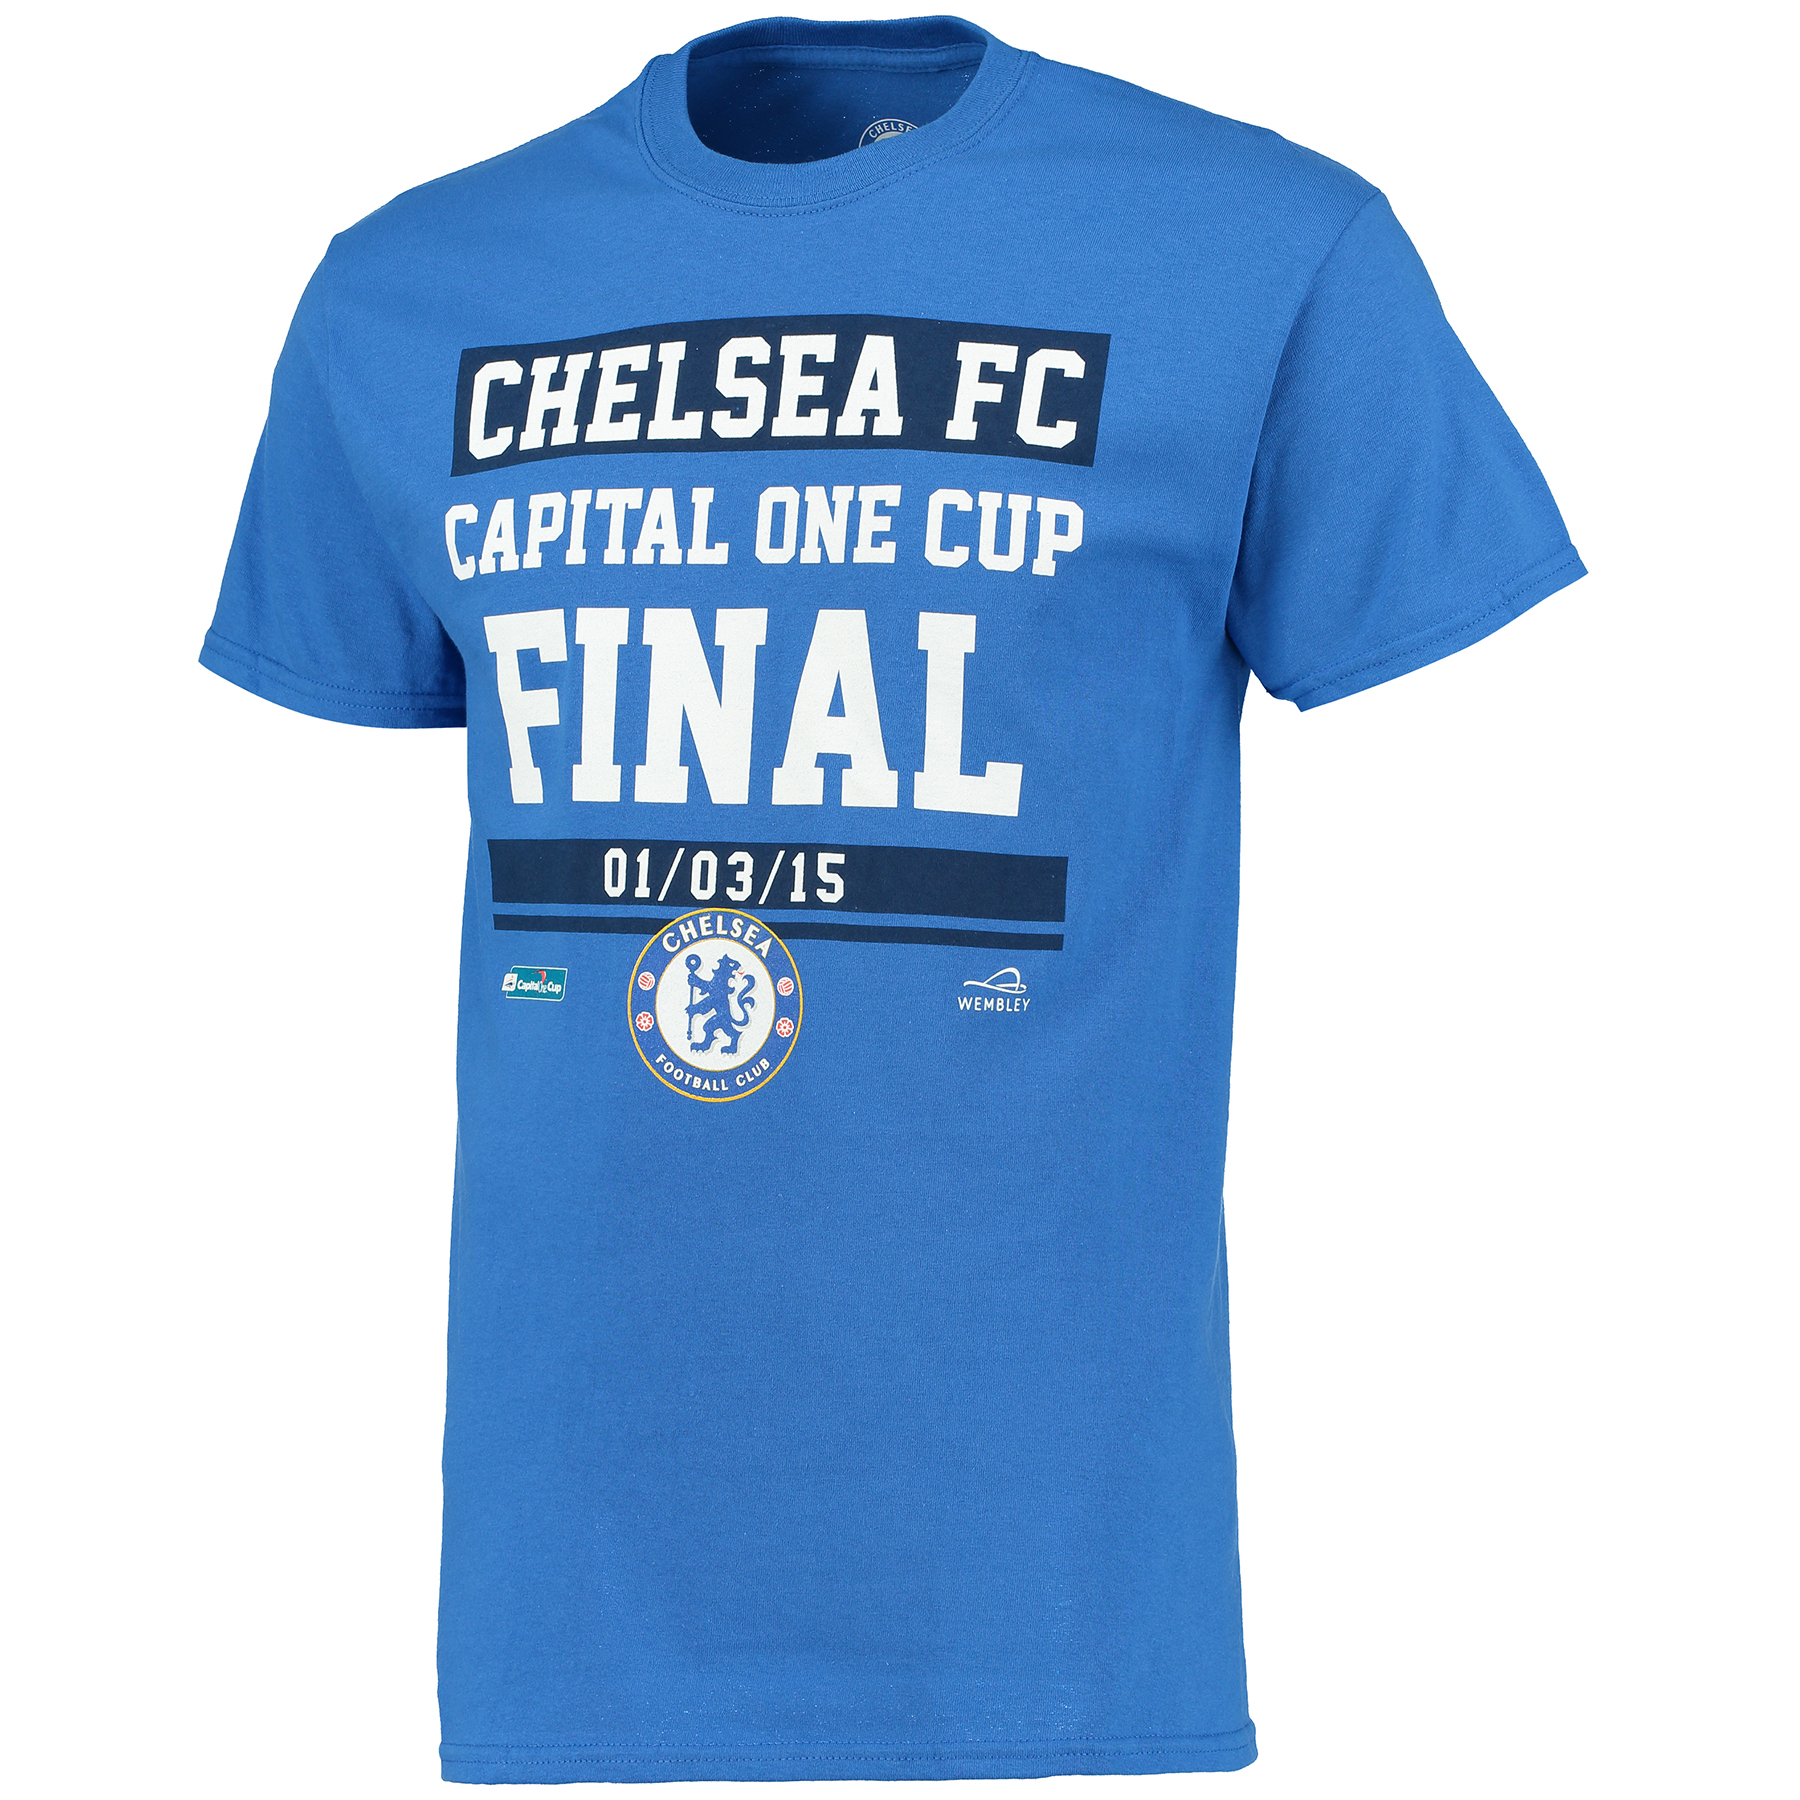 Chelsea Capital One Cup Road To Wembley T-Shirt - Royal - Mens